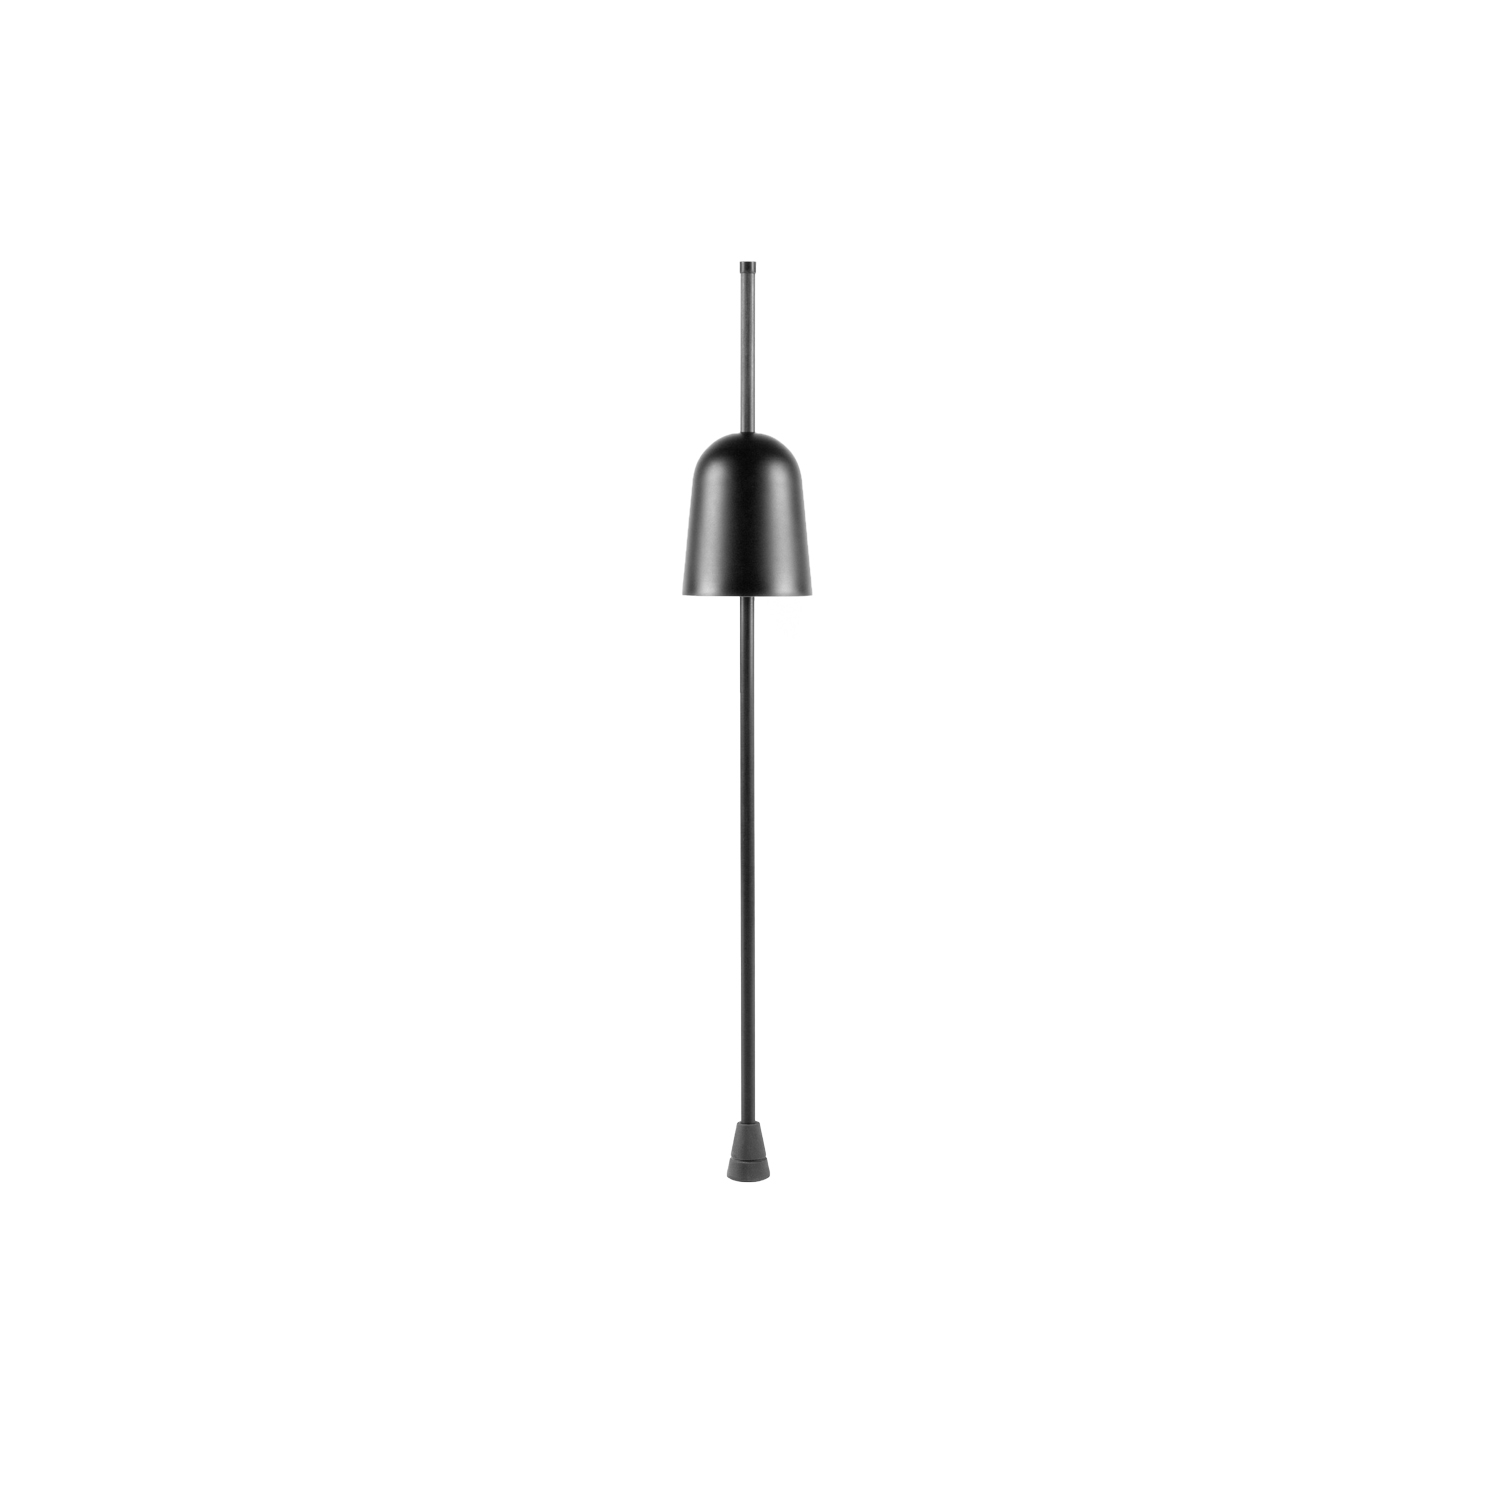 Ascent Table Lamp -  Intimate, conceptual, Ascent provides infinite shadings of light intensity, thanks to the very precise axial dimmer controlled by electronics mounted inside the shade. Circuits on the stem send input to a microprocessor that reacts to the vertical movement, adjusting light flow. | Matter of Stuff